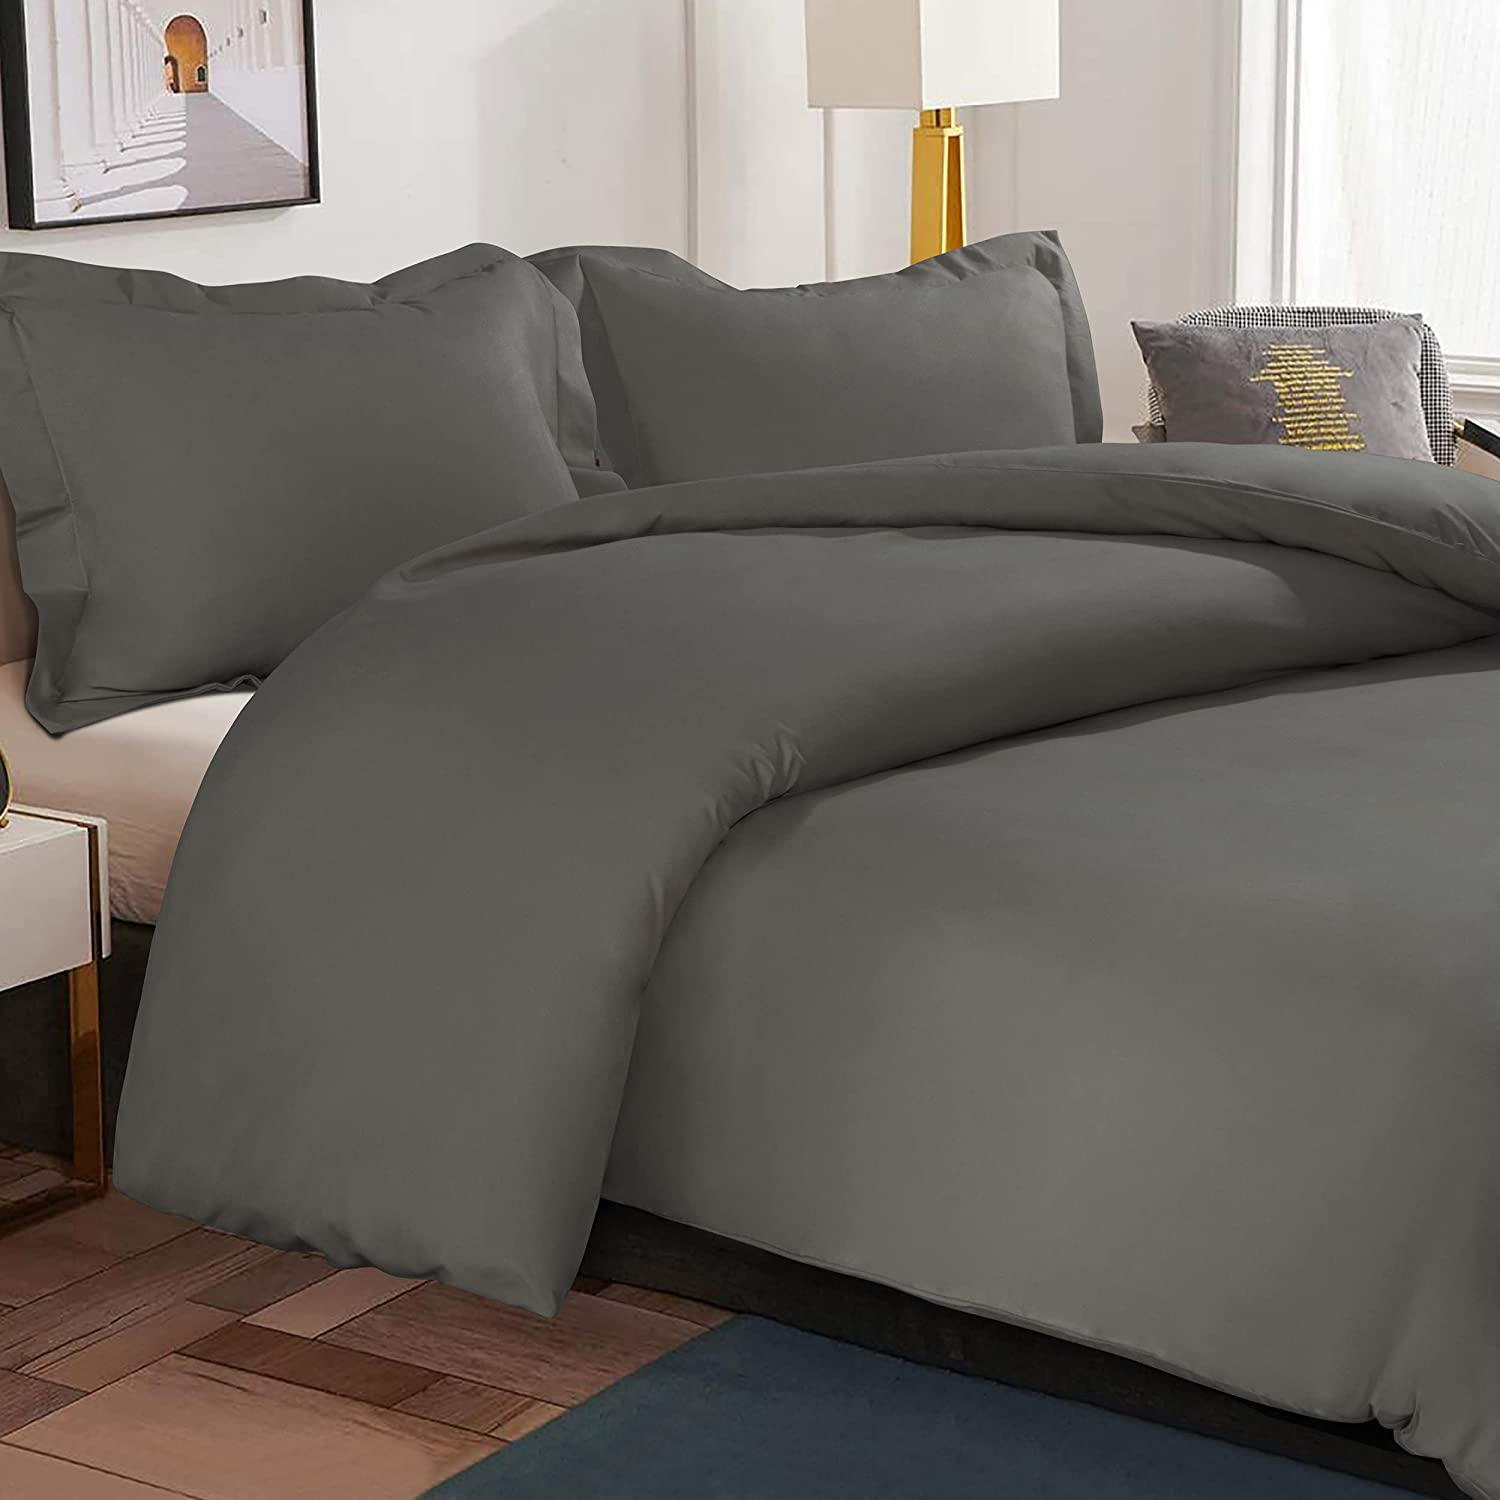 NTBAY Microfiber Twin Duvet Cover Set 2 Pieces Zipp Solid Challenge the lowest price of Japan At the price Color